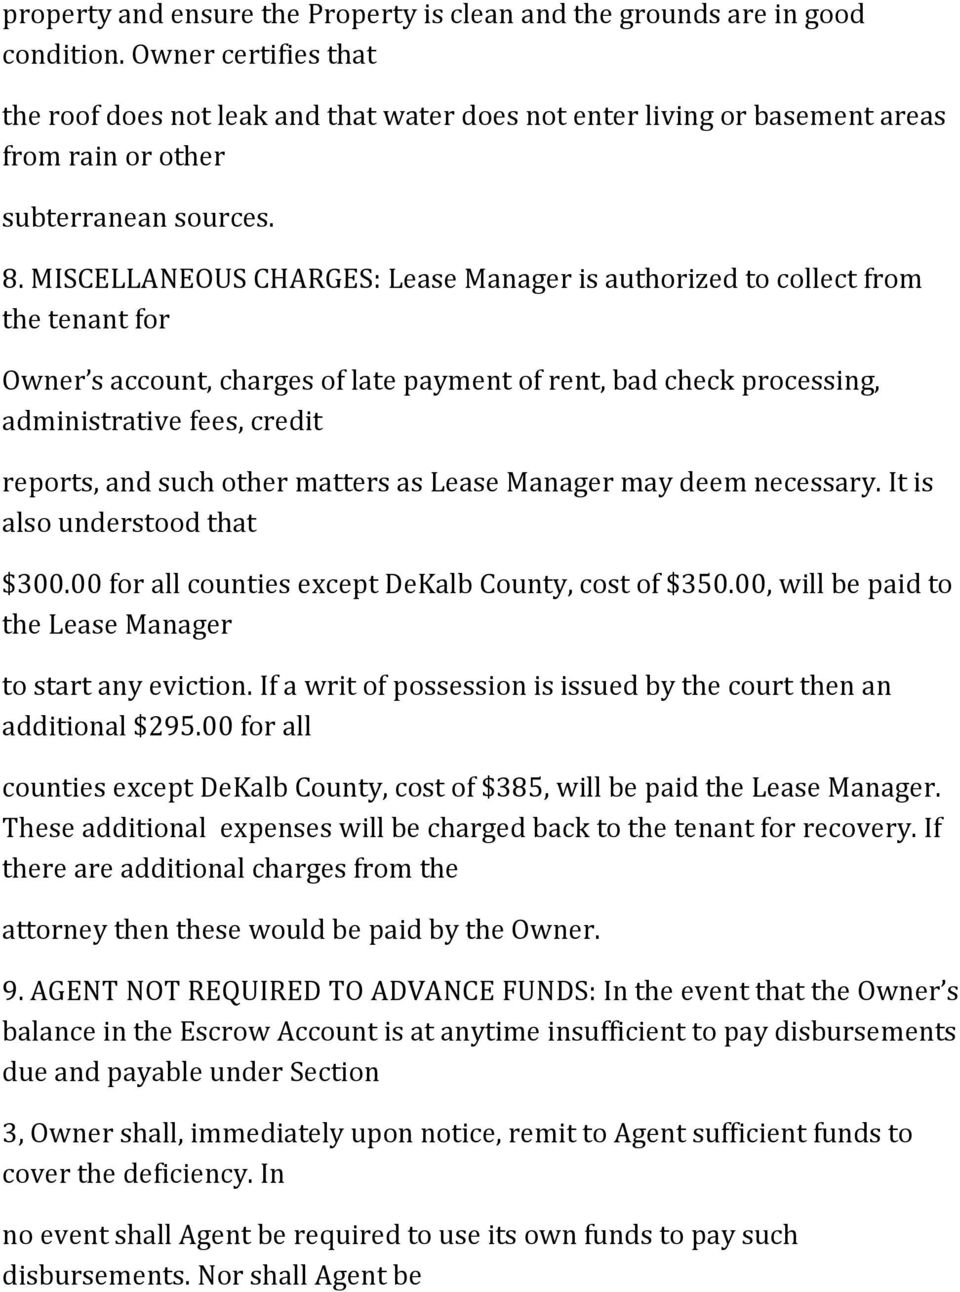 MISCELLANEOUS CHARGES: Lease Manager is authorized to collect from the tenant for Owner s account, charges of late payment of rent, bad check processing, administrative fees, credit reports, and such